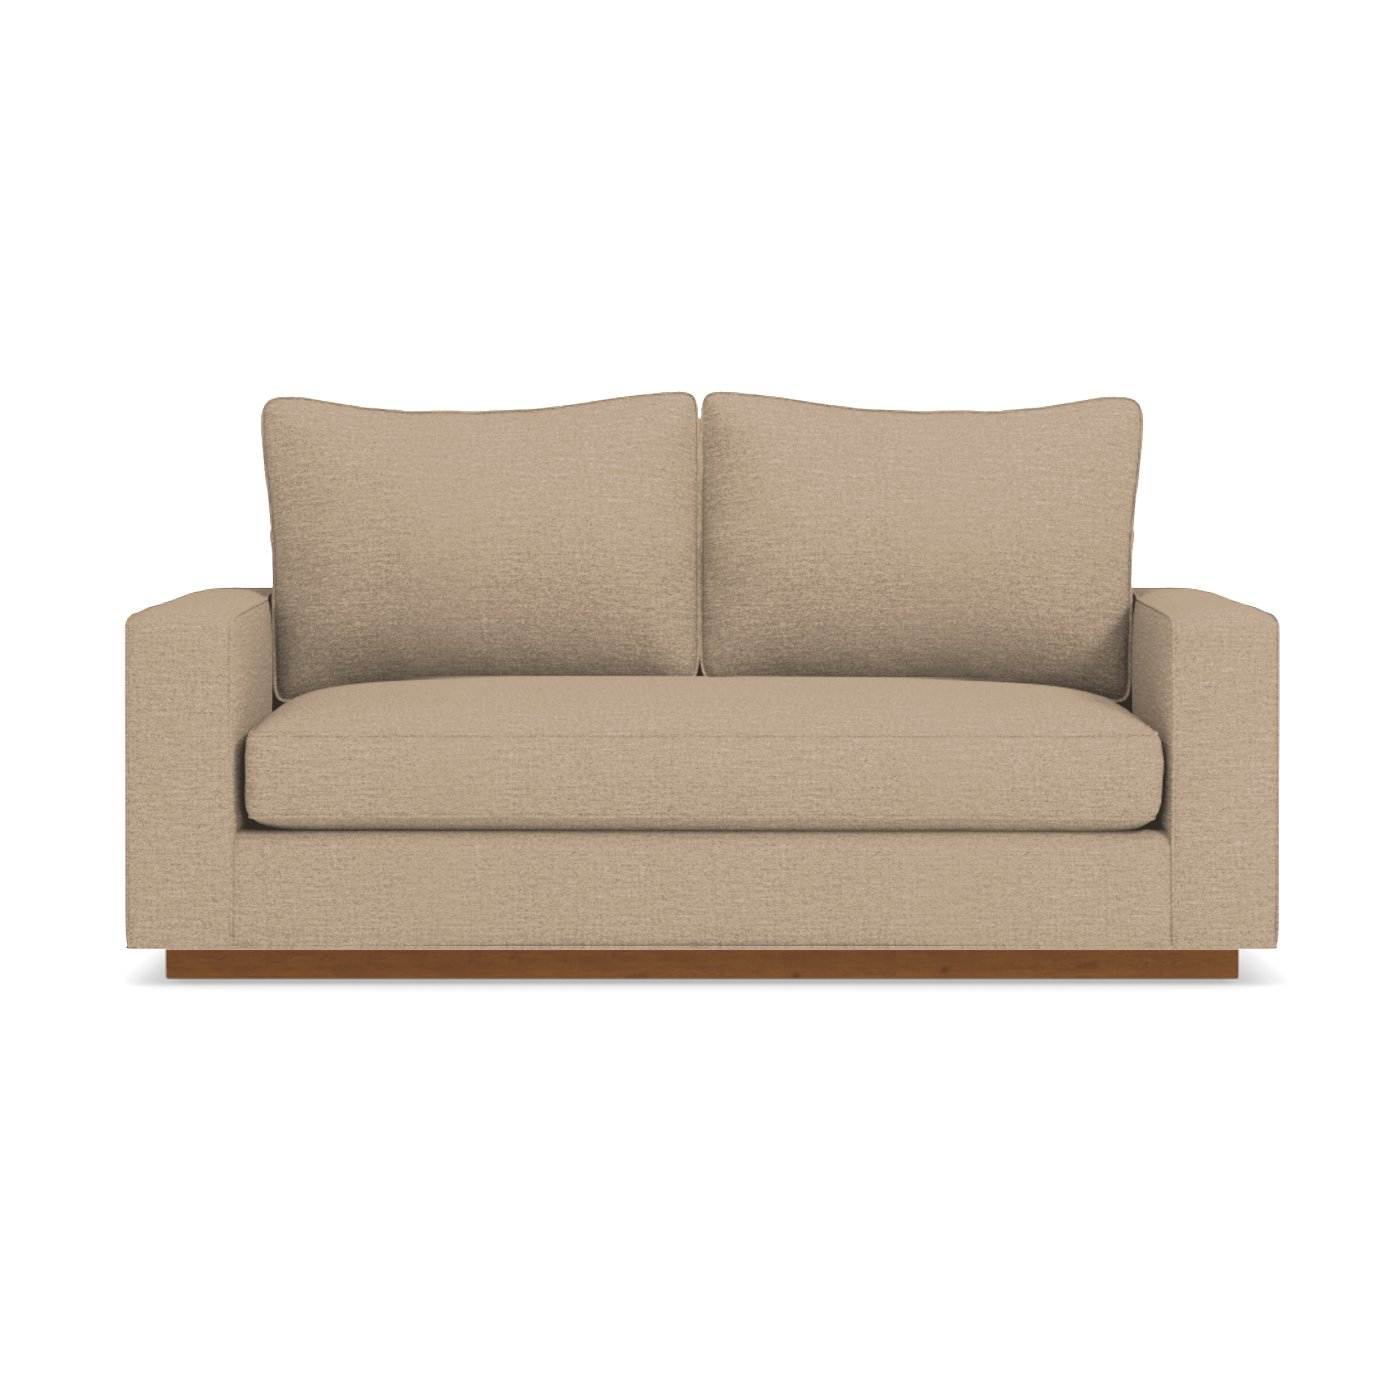 Harper Apartment Size Sleeper Sofa Choice of Fabrics Apt2B